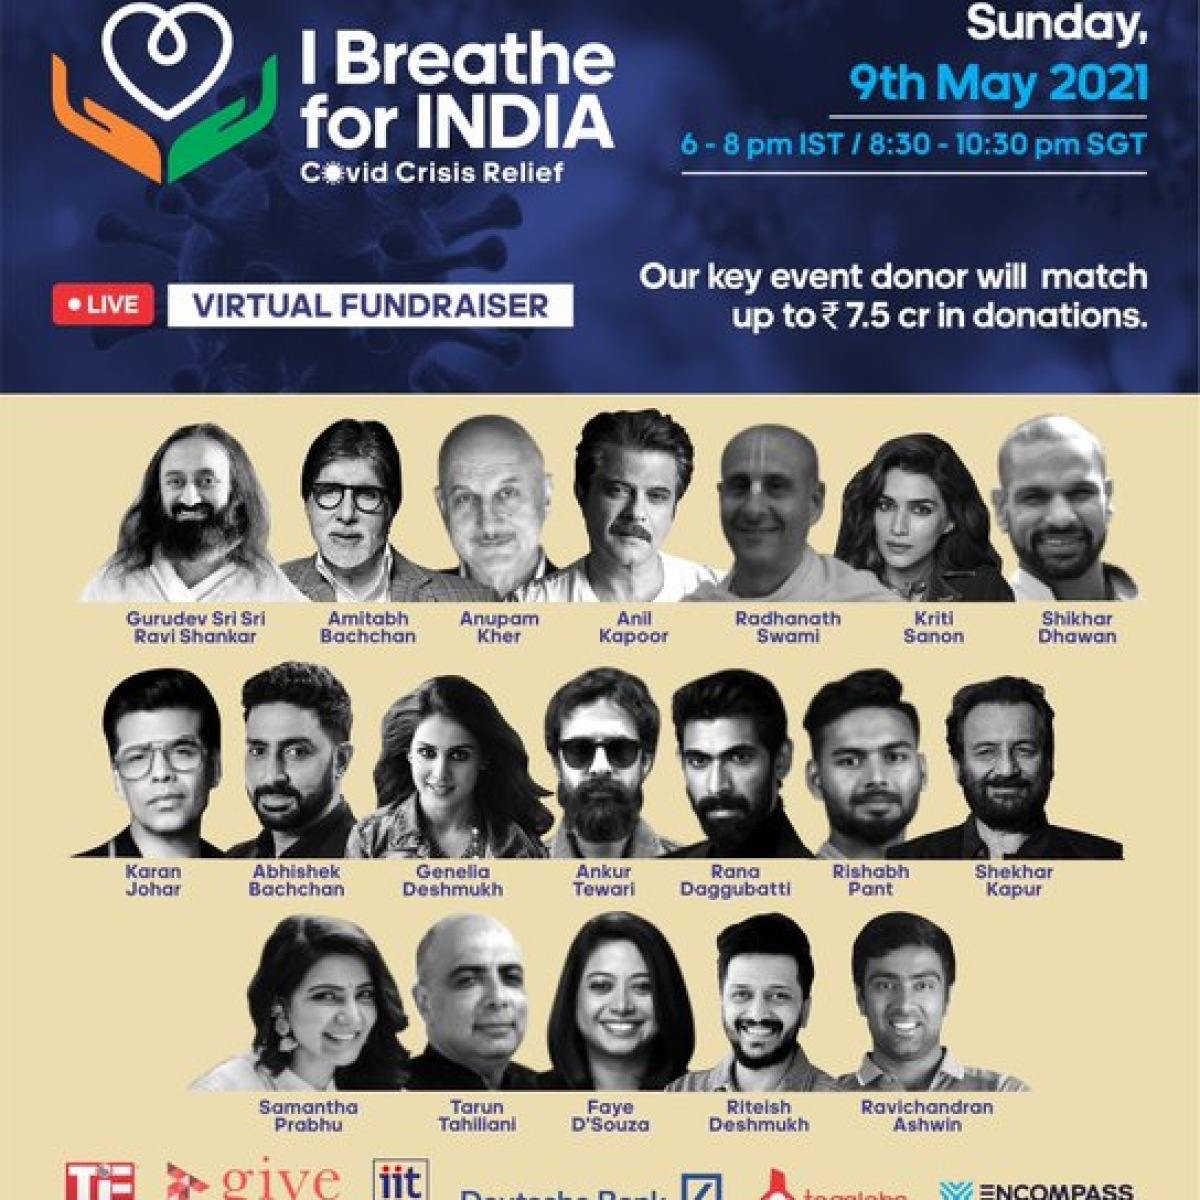 Lara Dutta Bhupathi raises Rs 14.6 crore for COVID-19 relief through 'I Breathe For India'; expresses gratitude